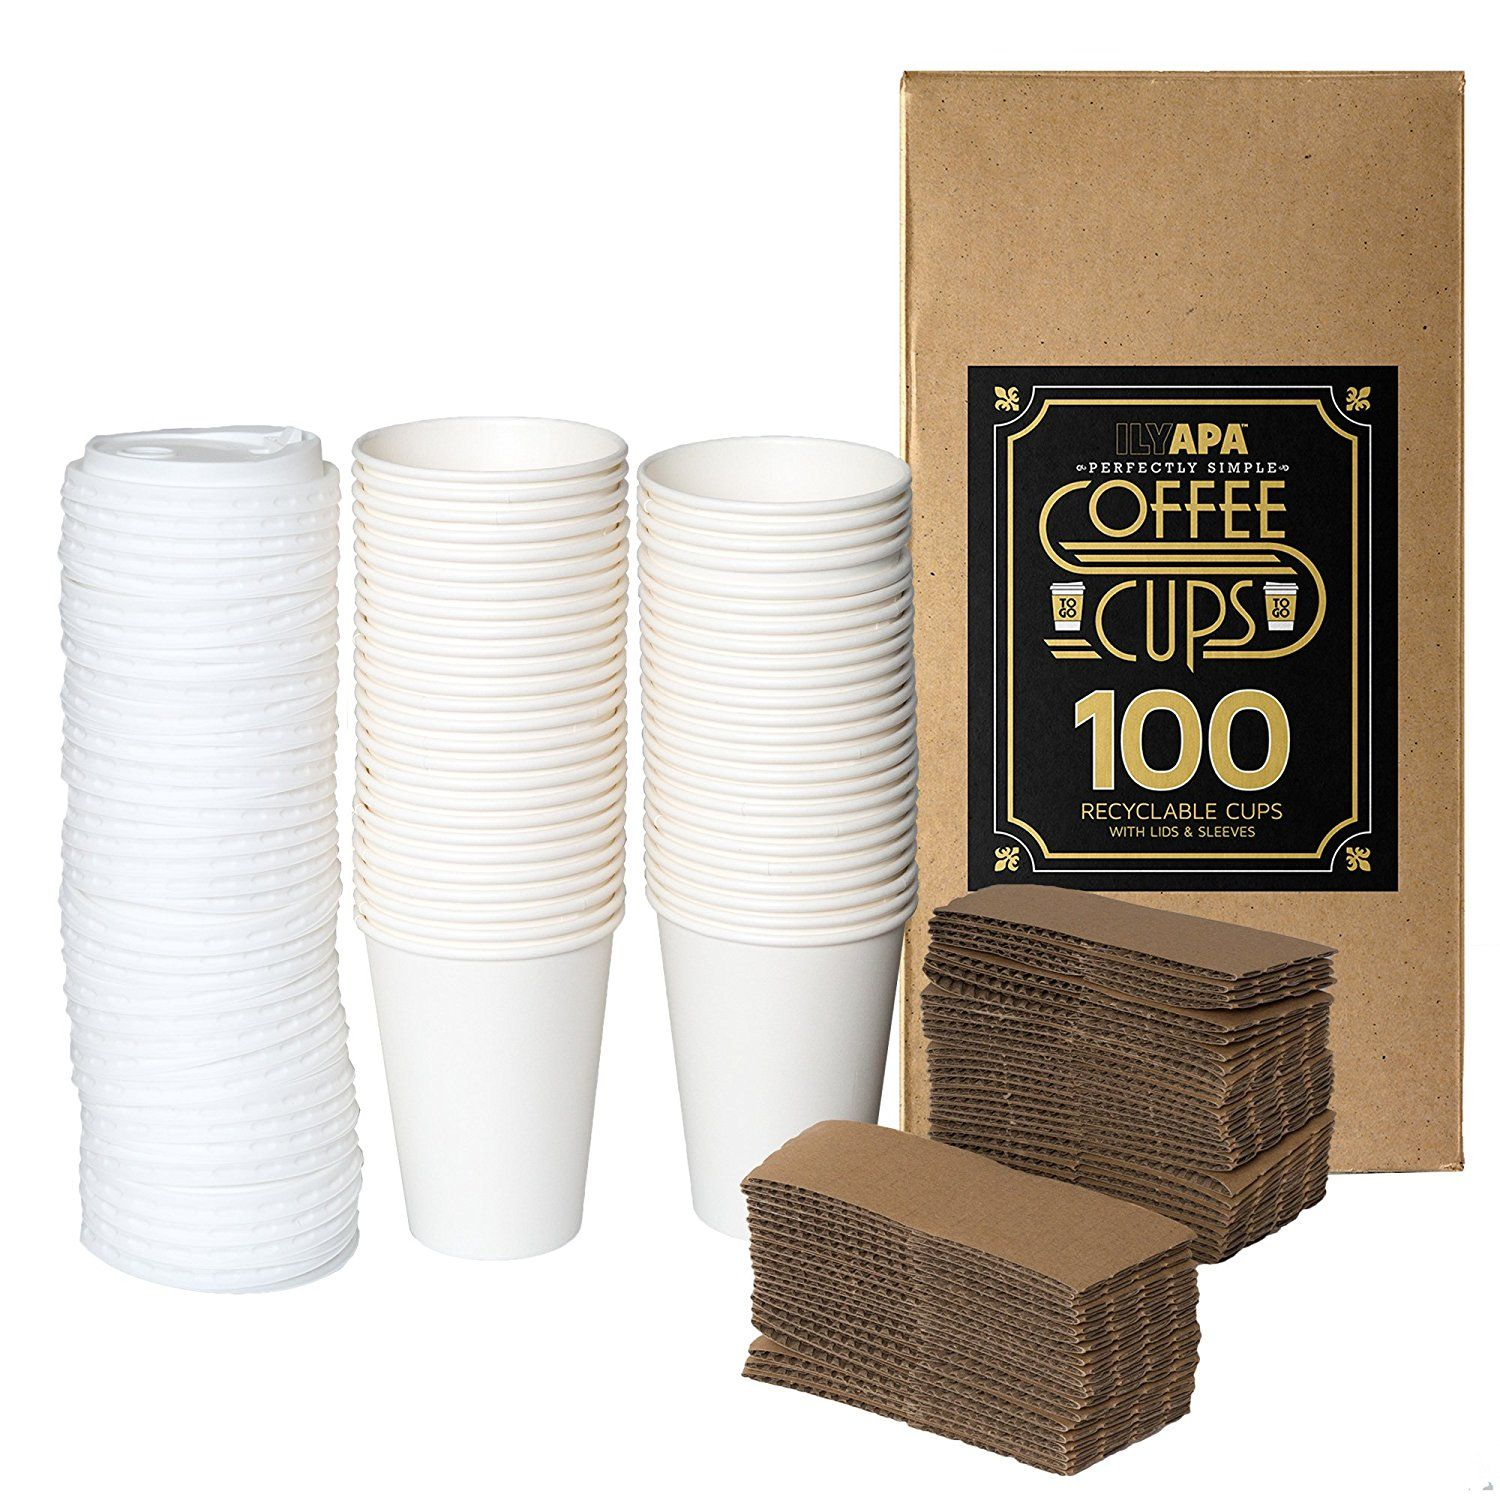 50 Pack 12 oz To Go Coffee Cups with Sleeves